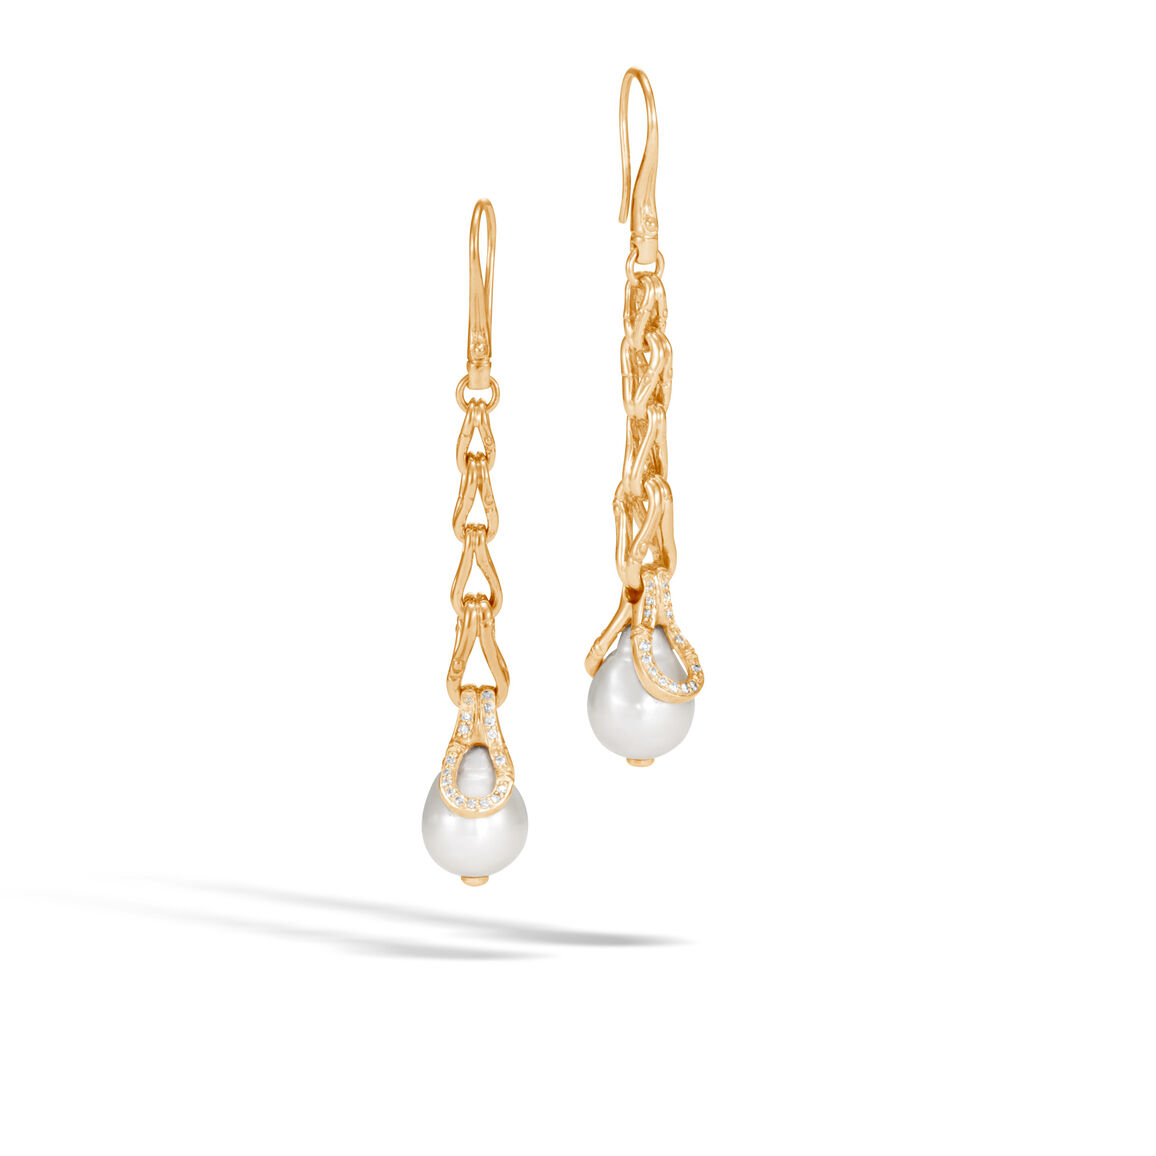 Bamboo Drop Earring in18K Gold with11MM Pearl, Dia